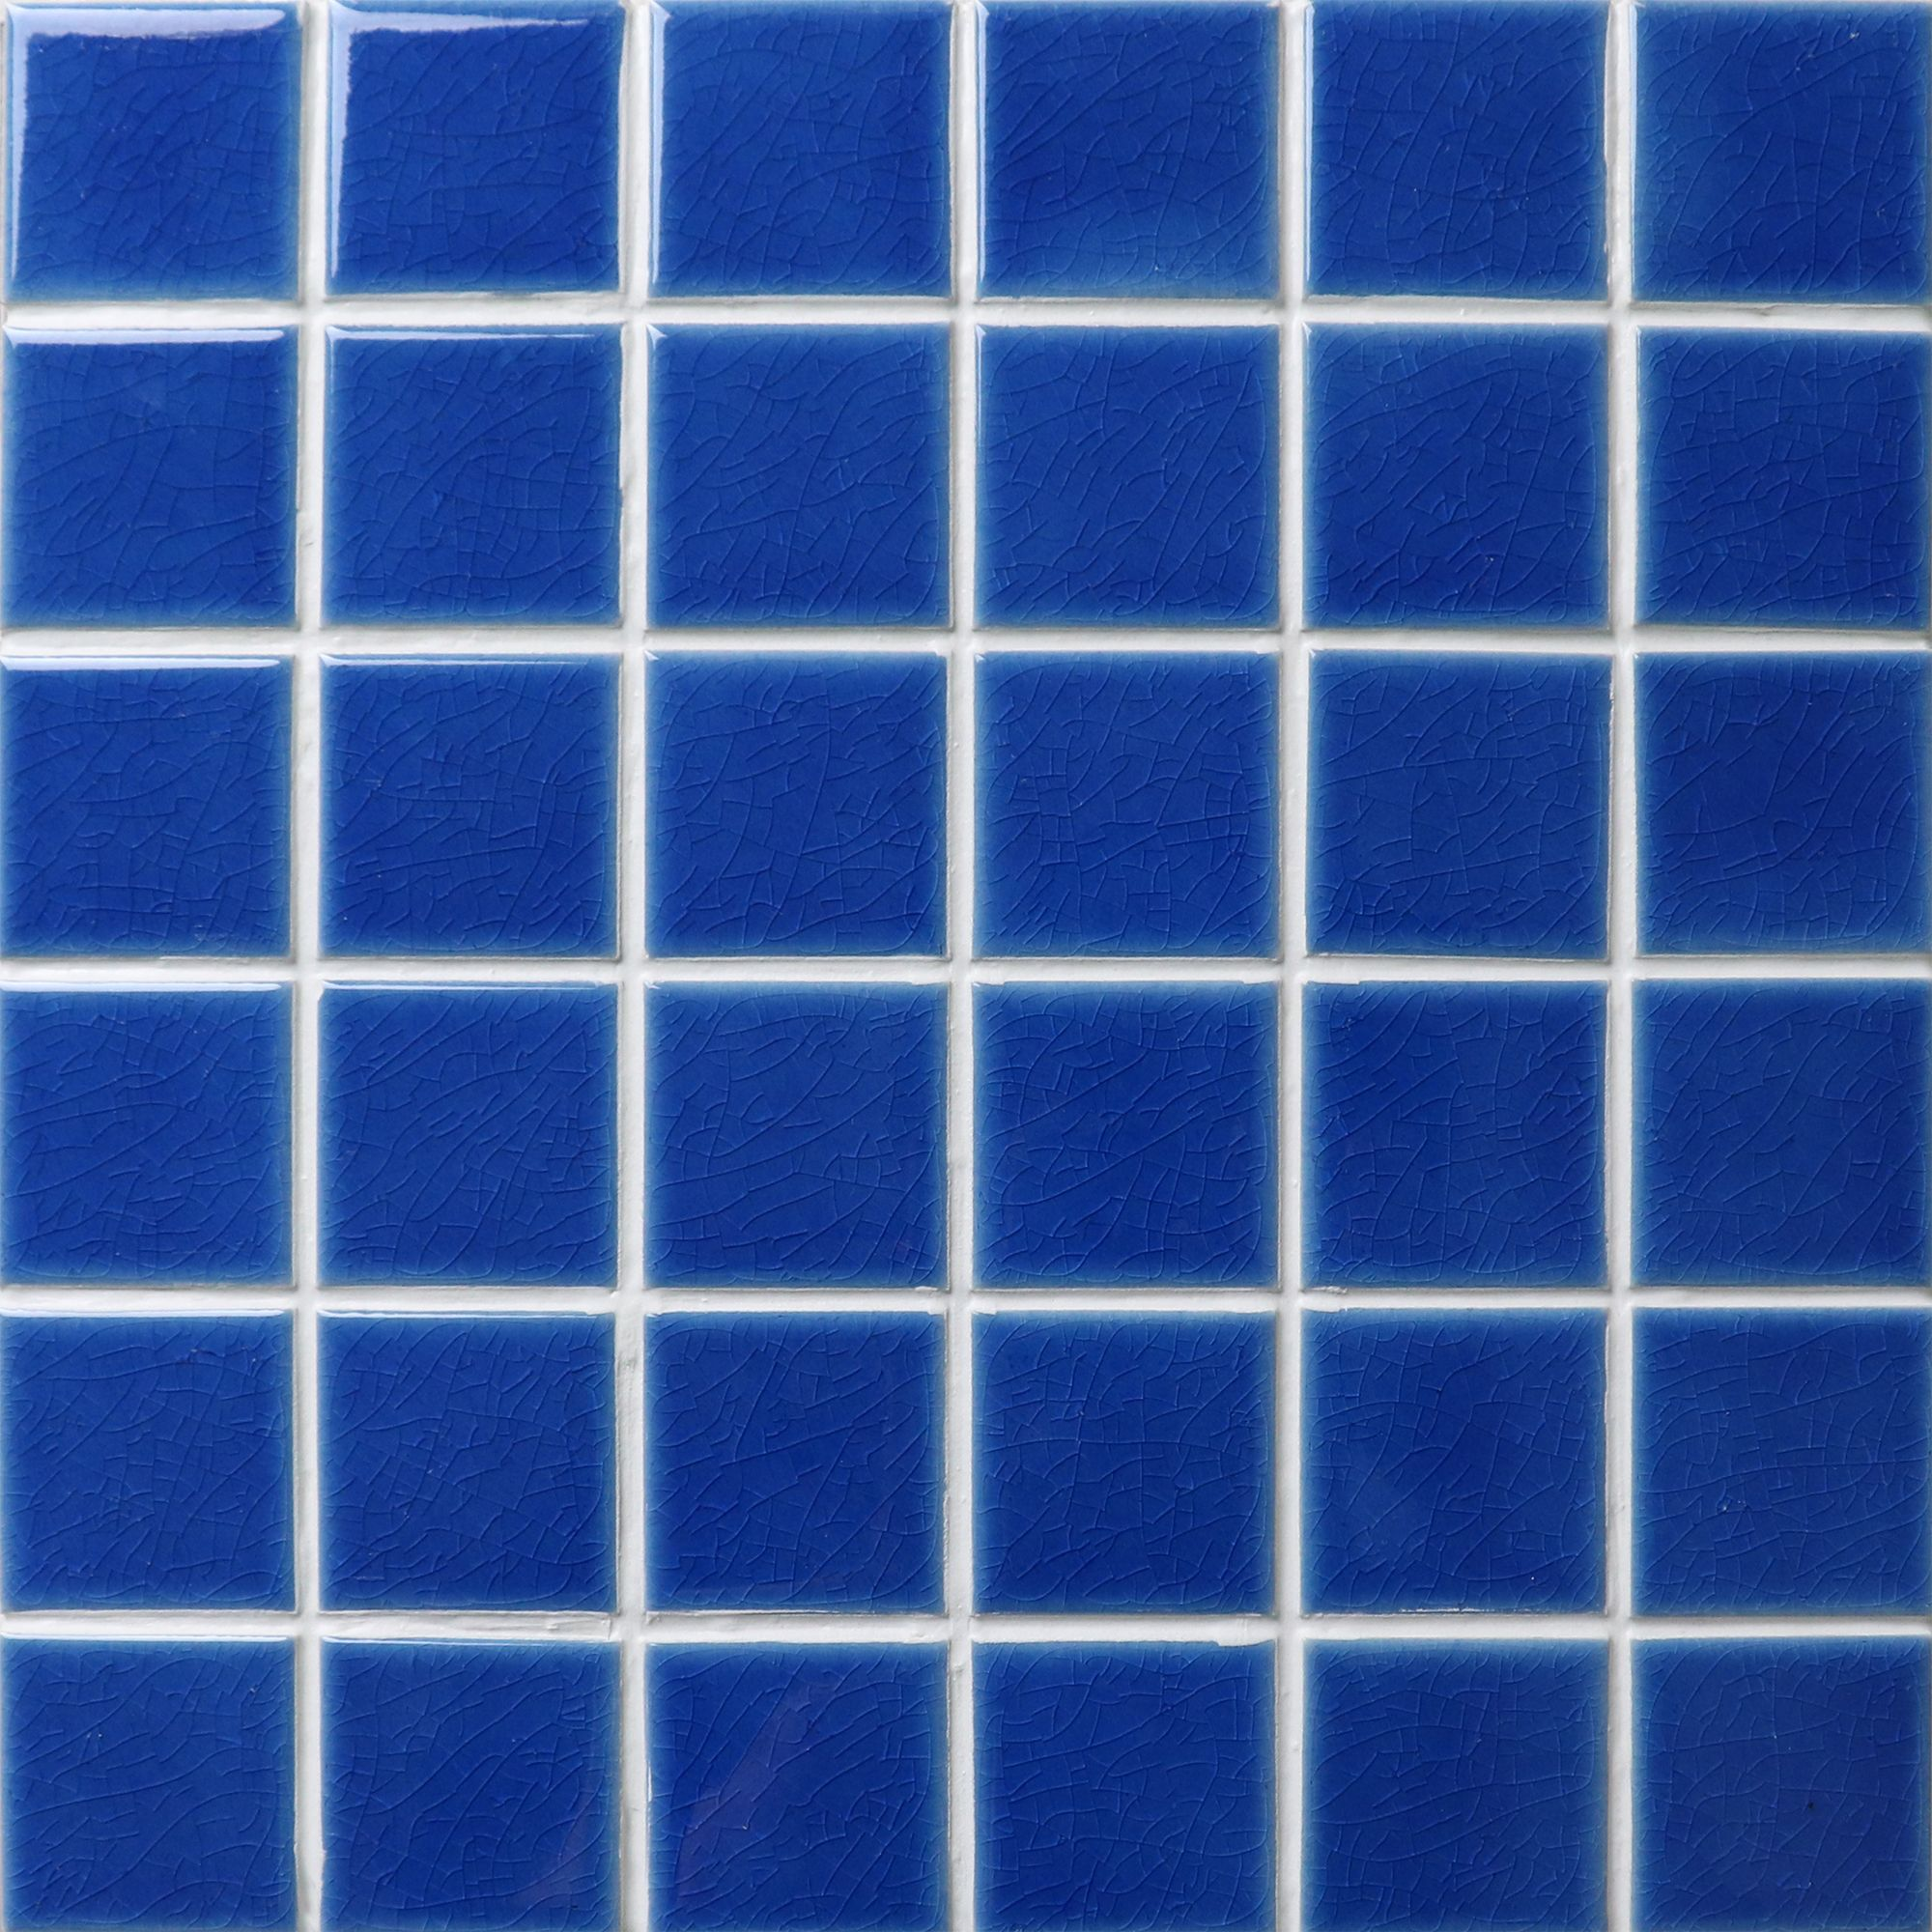 Ice crackle ceramic tile mosaic in 48x48mm is another hot selling ...